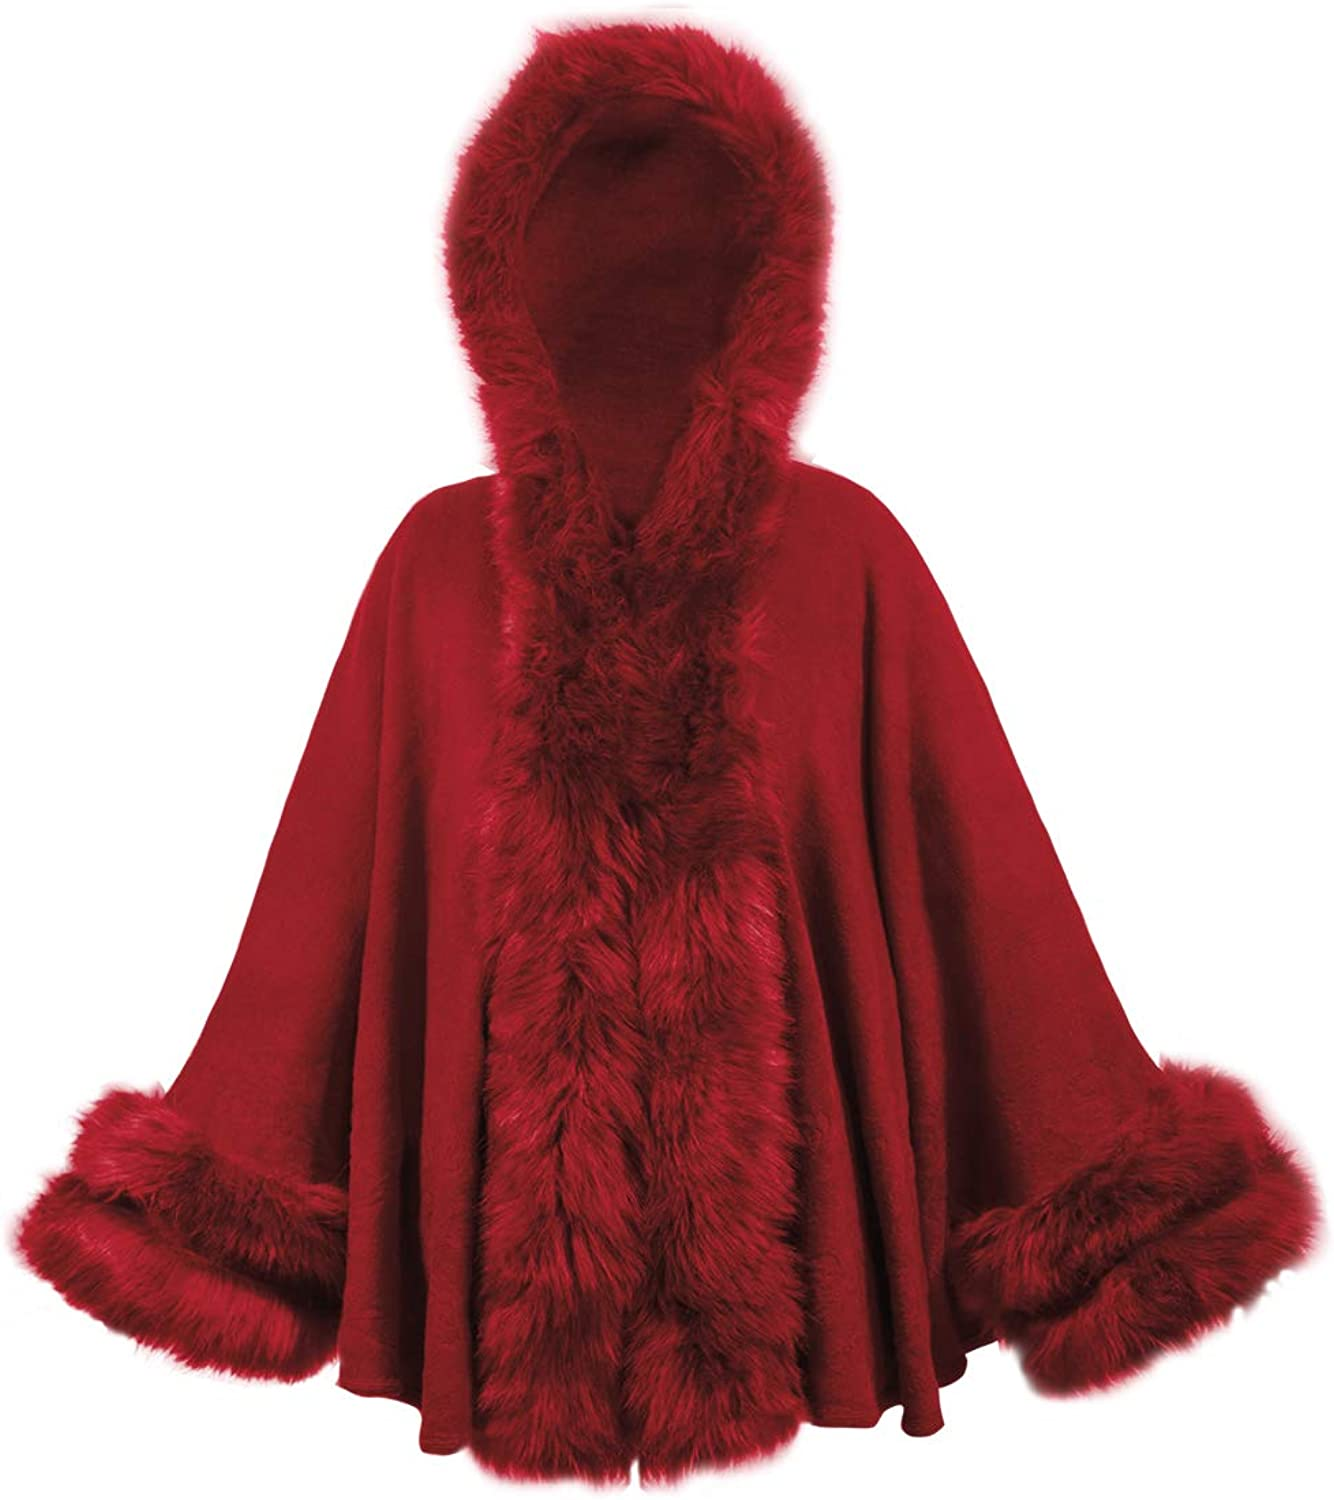 Dahlia Women's Faux Fur Poncho Cape with Trimmed Collar, Hood, and Cuffs